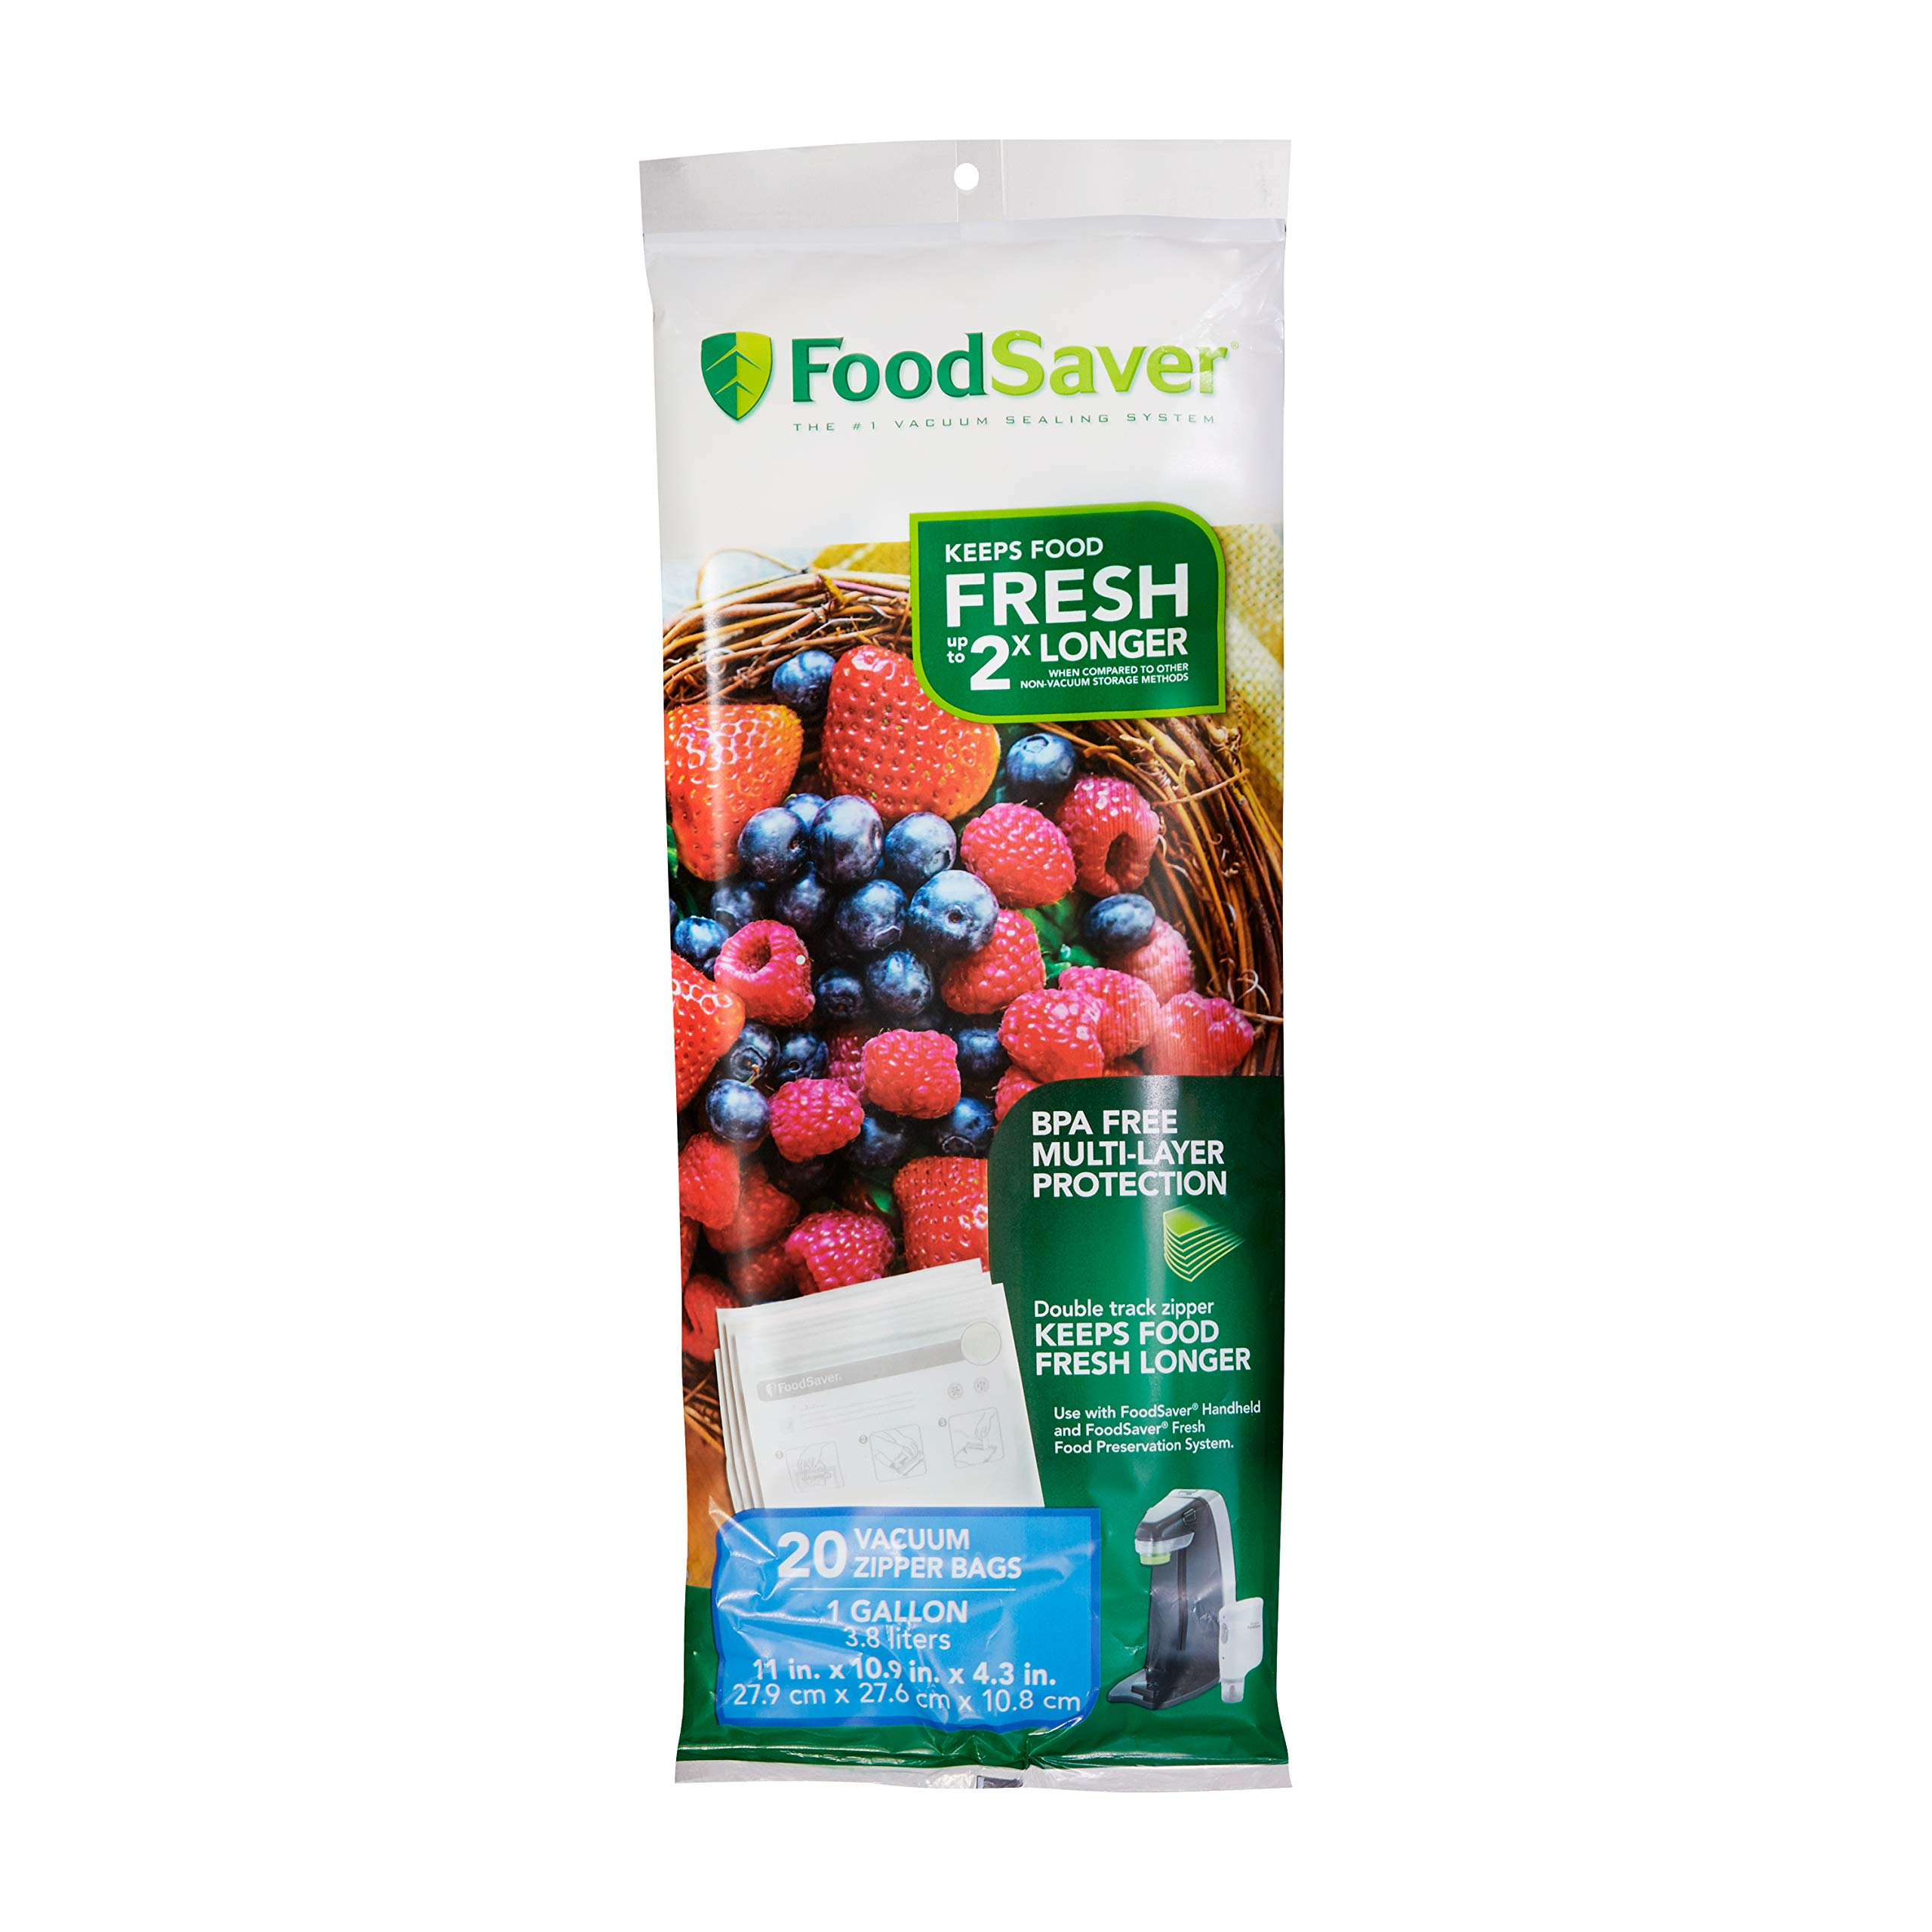 FoodSaver 1-Gallon Multilayer Construction Vacuum Zipper Bags, 20 Count by FoodSaver